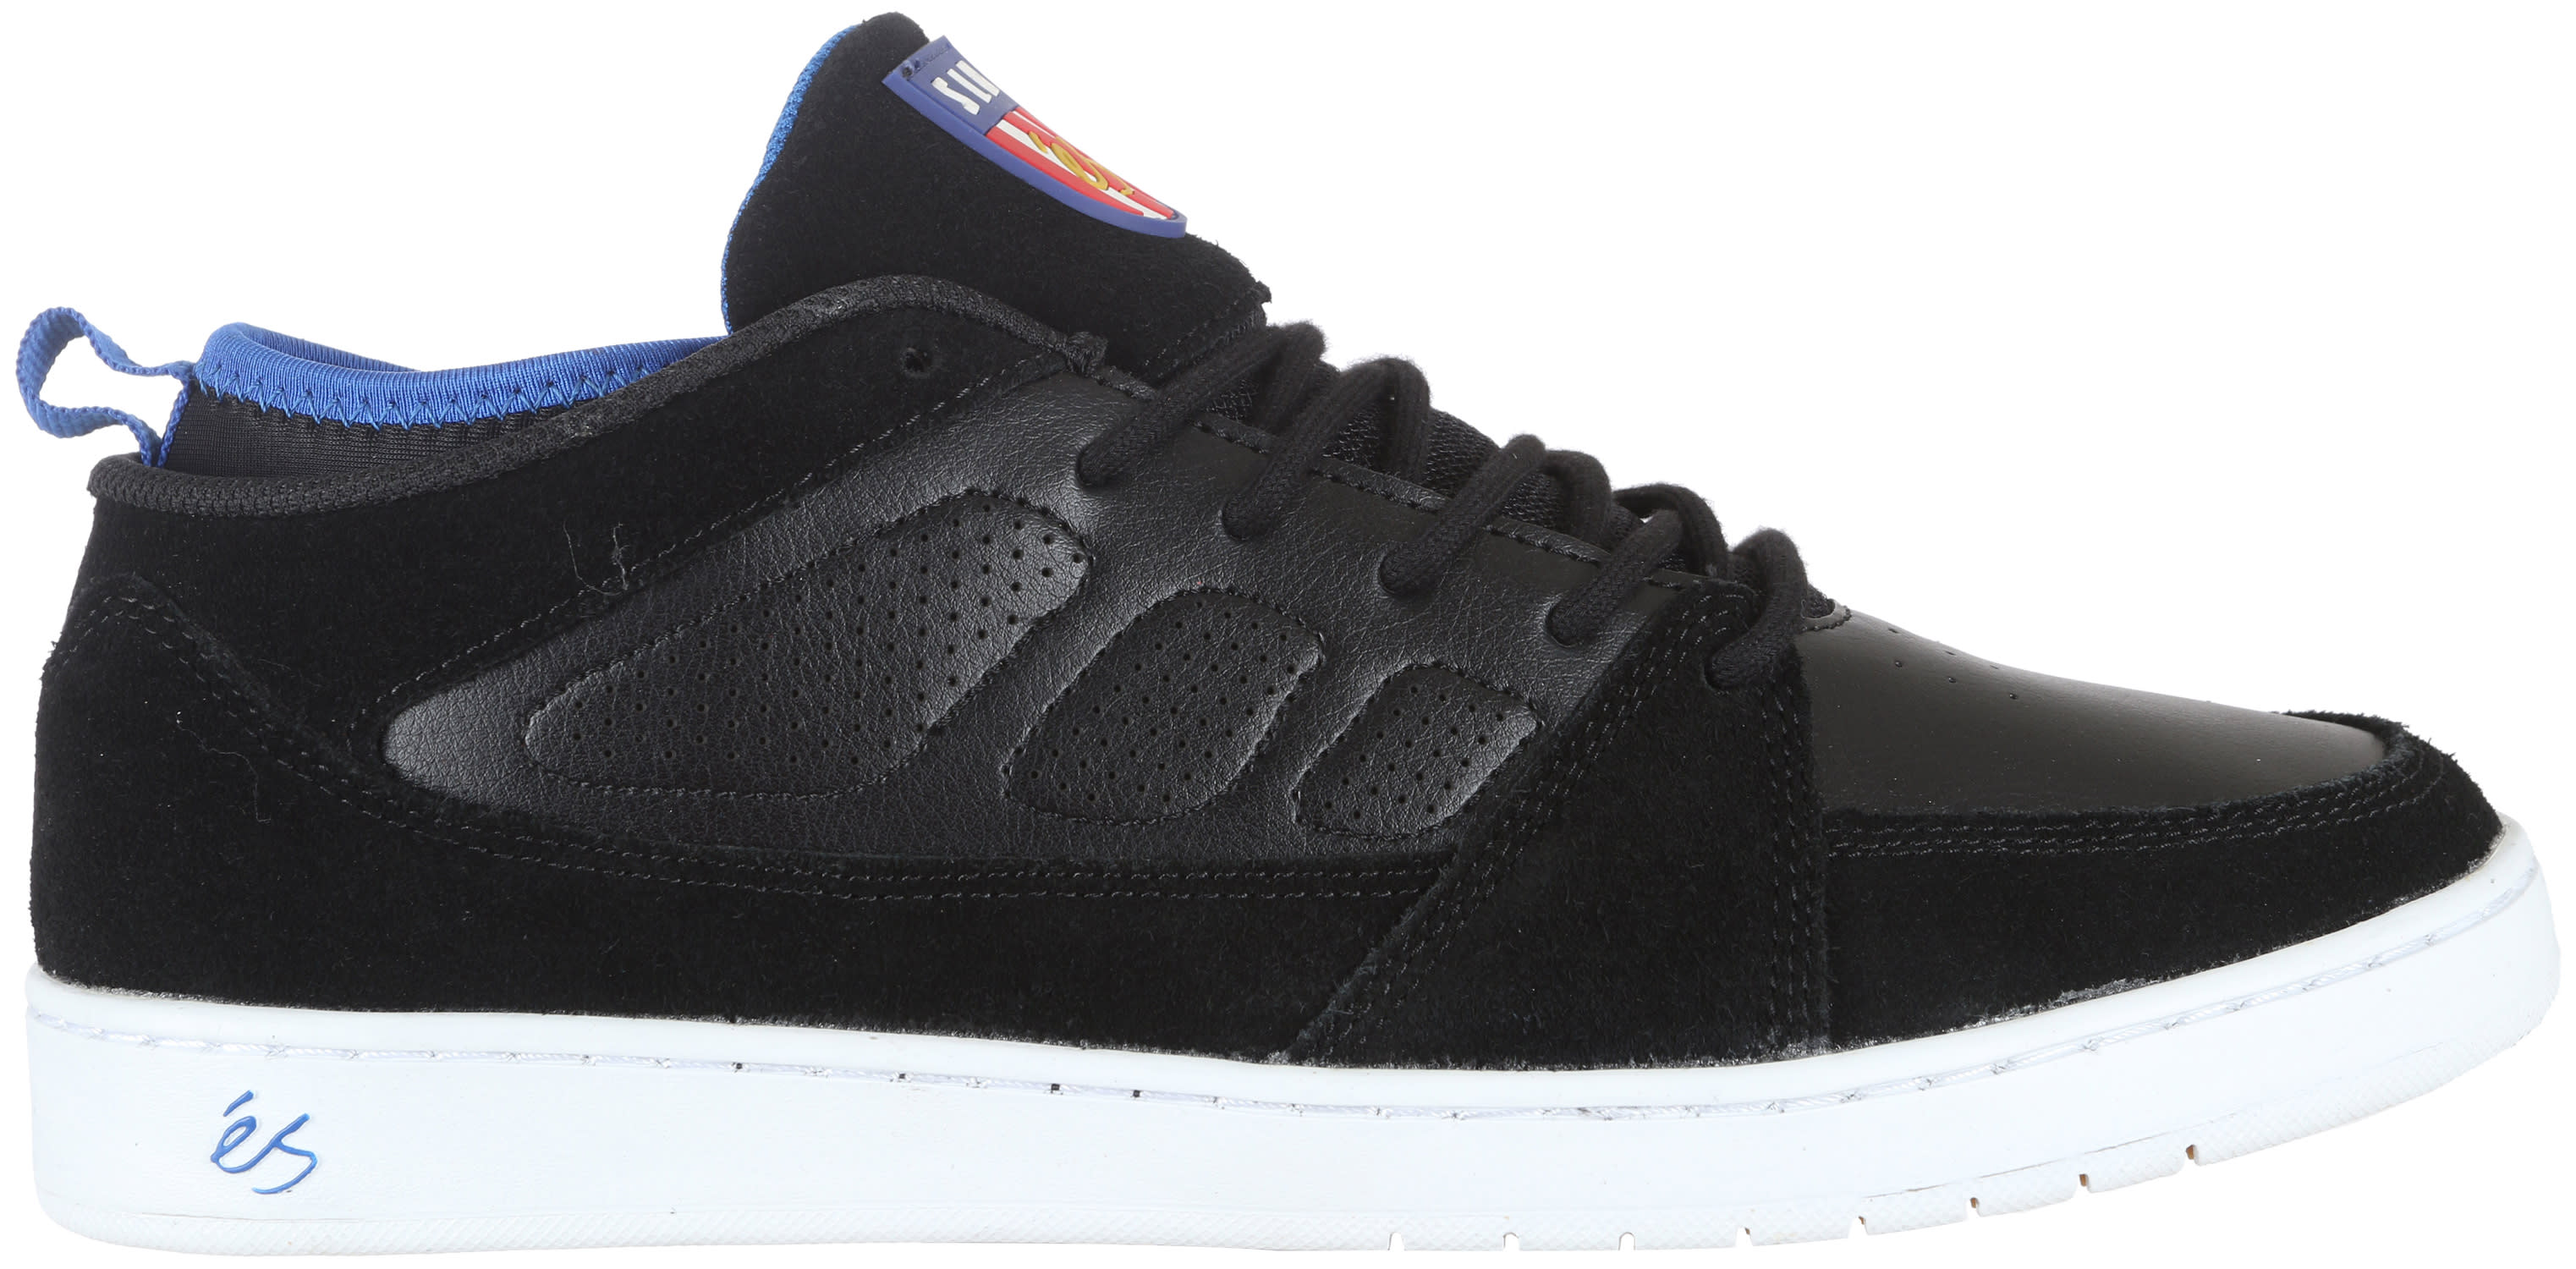 Es Slb Mid Skate Shoes